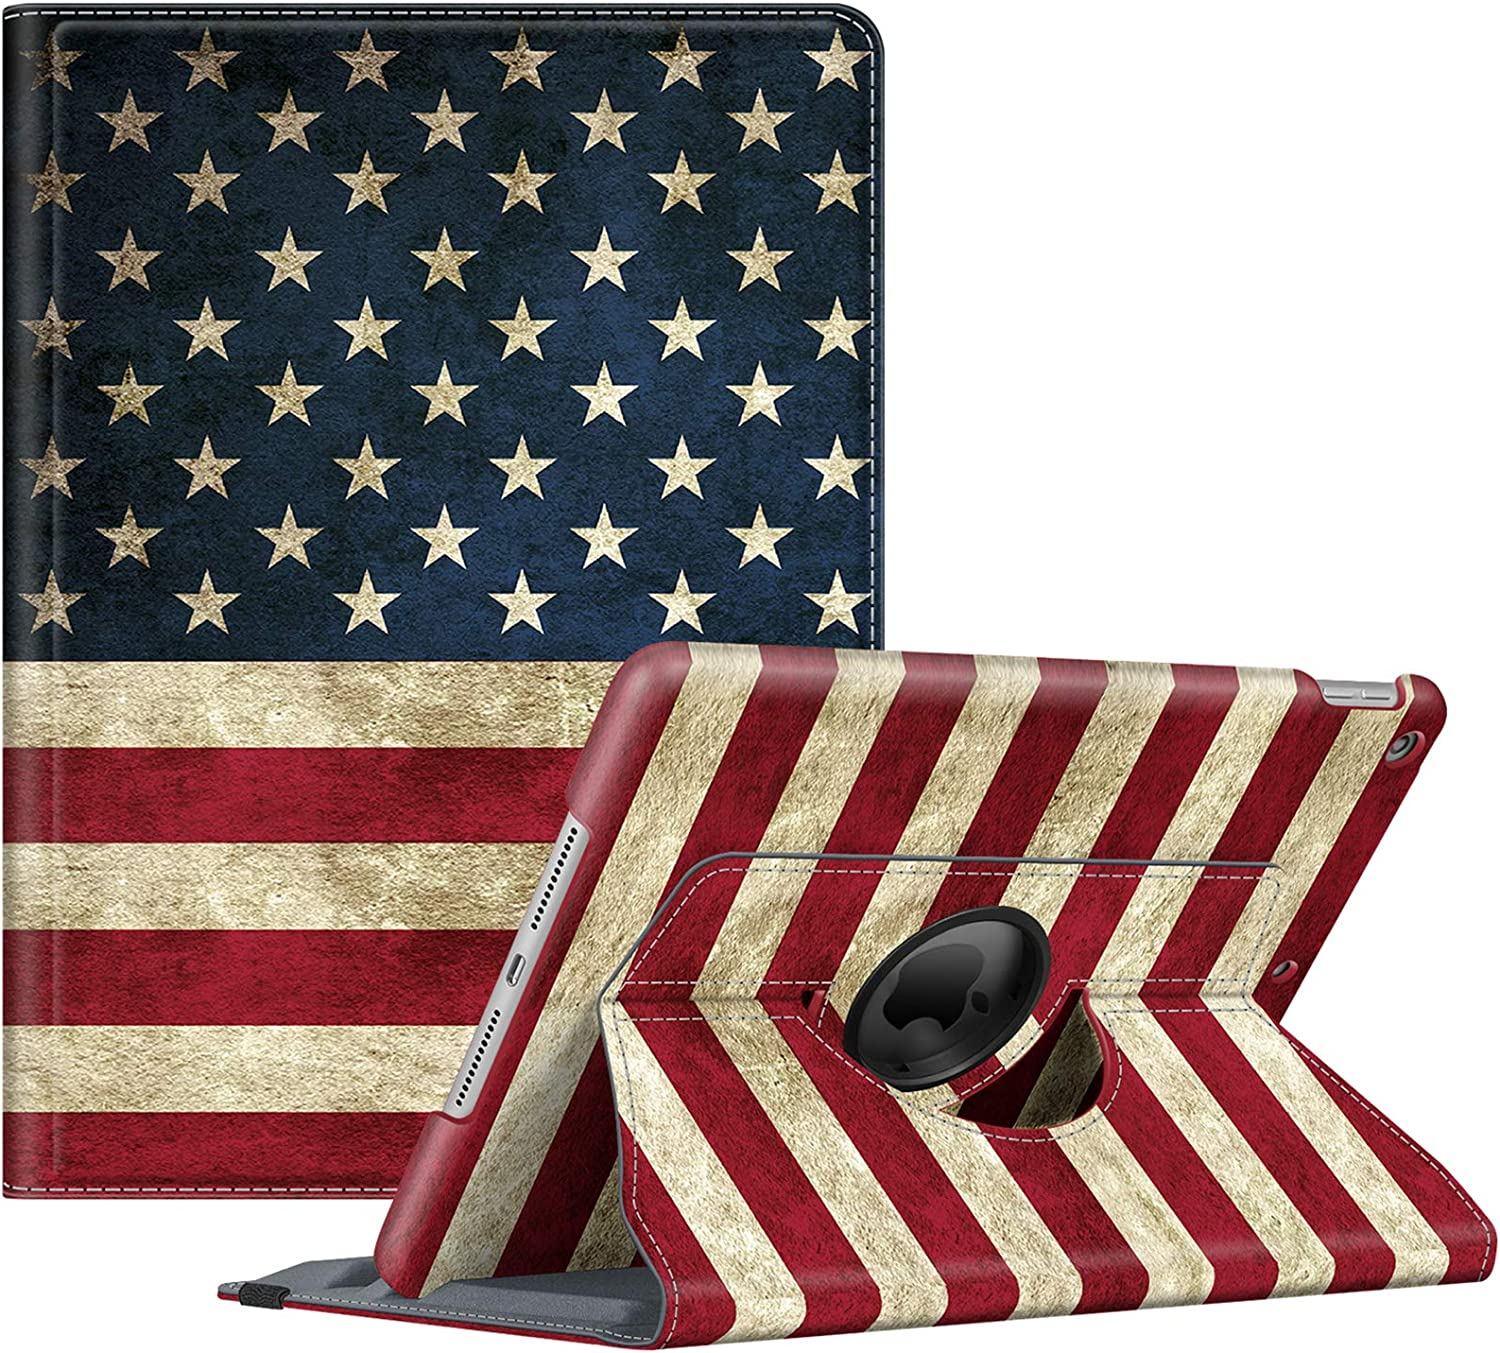 Fintie Rotating Case for New iPad 8th Gen (2020) / 7th Generation (2019) 10.2 Inch - [Built-in Pencil Holder] 360 Degree Rotating Smart Protective Stand Cover with Auto Sleep/Wake, US Flag